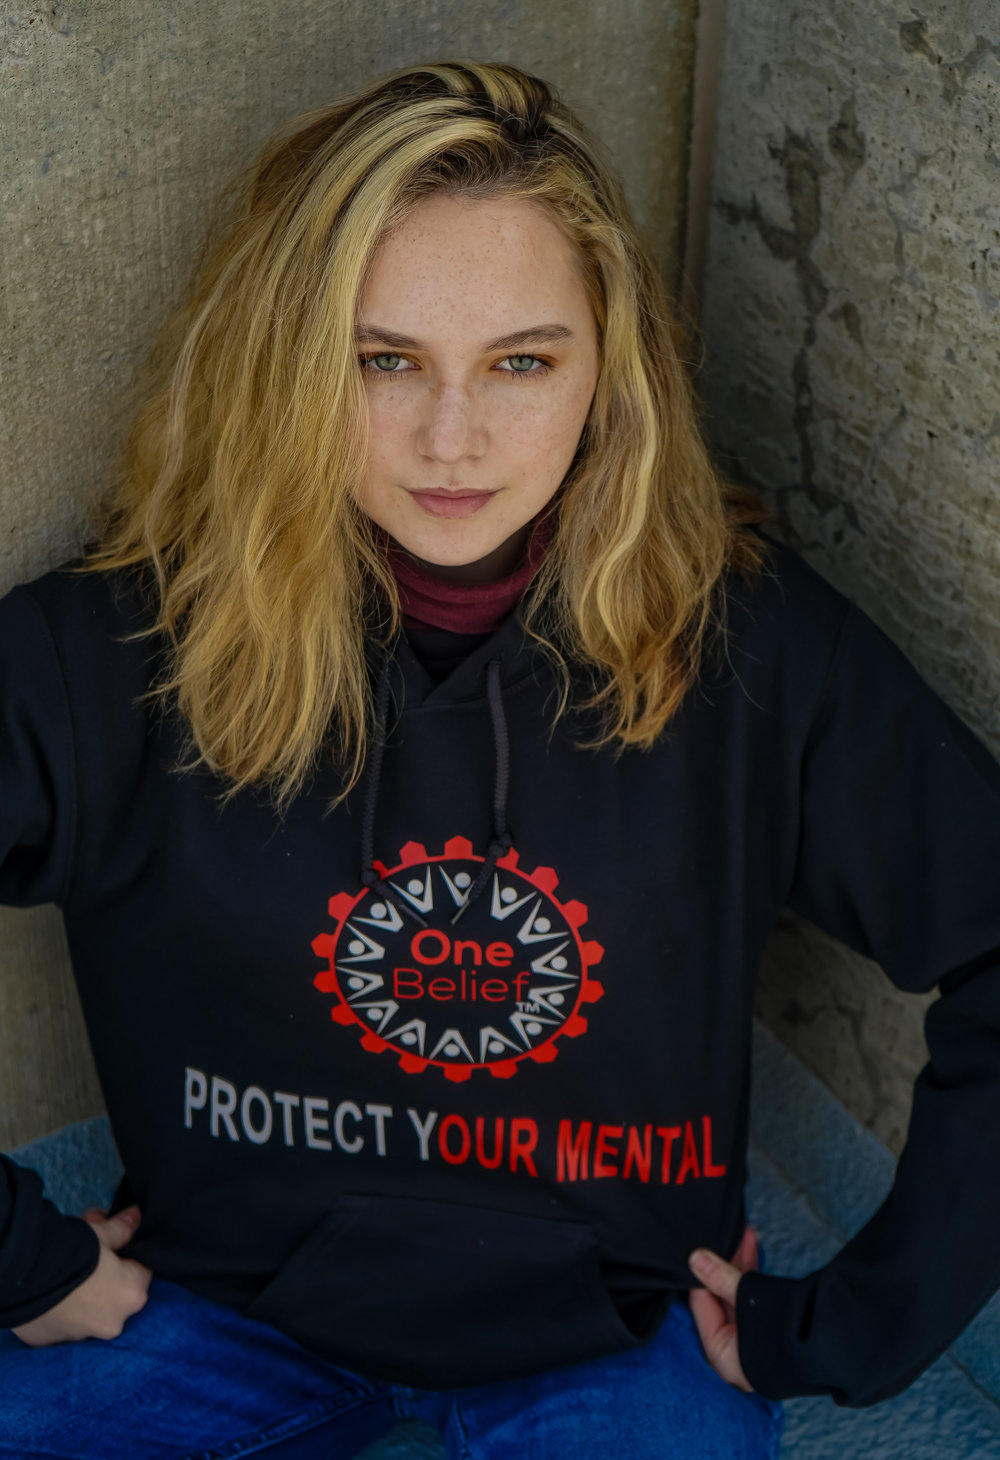 Protect your mental-35.jpg